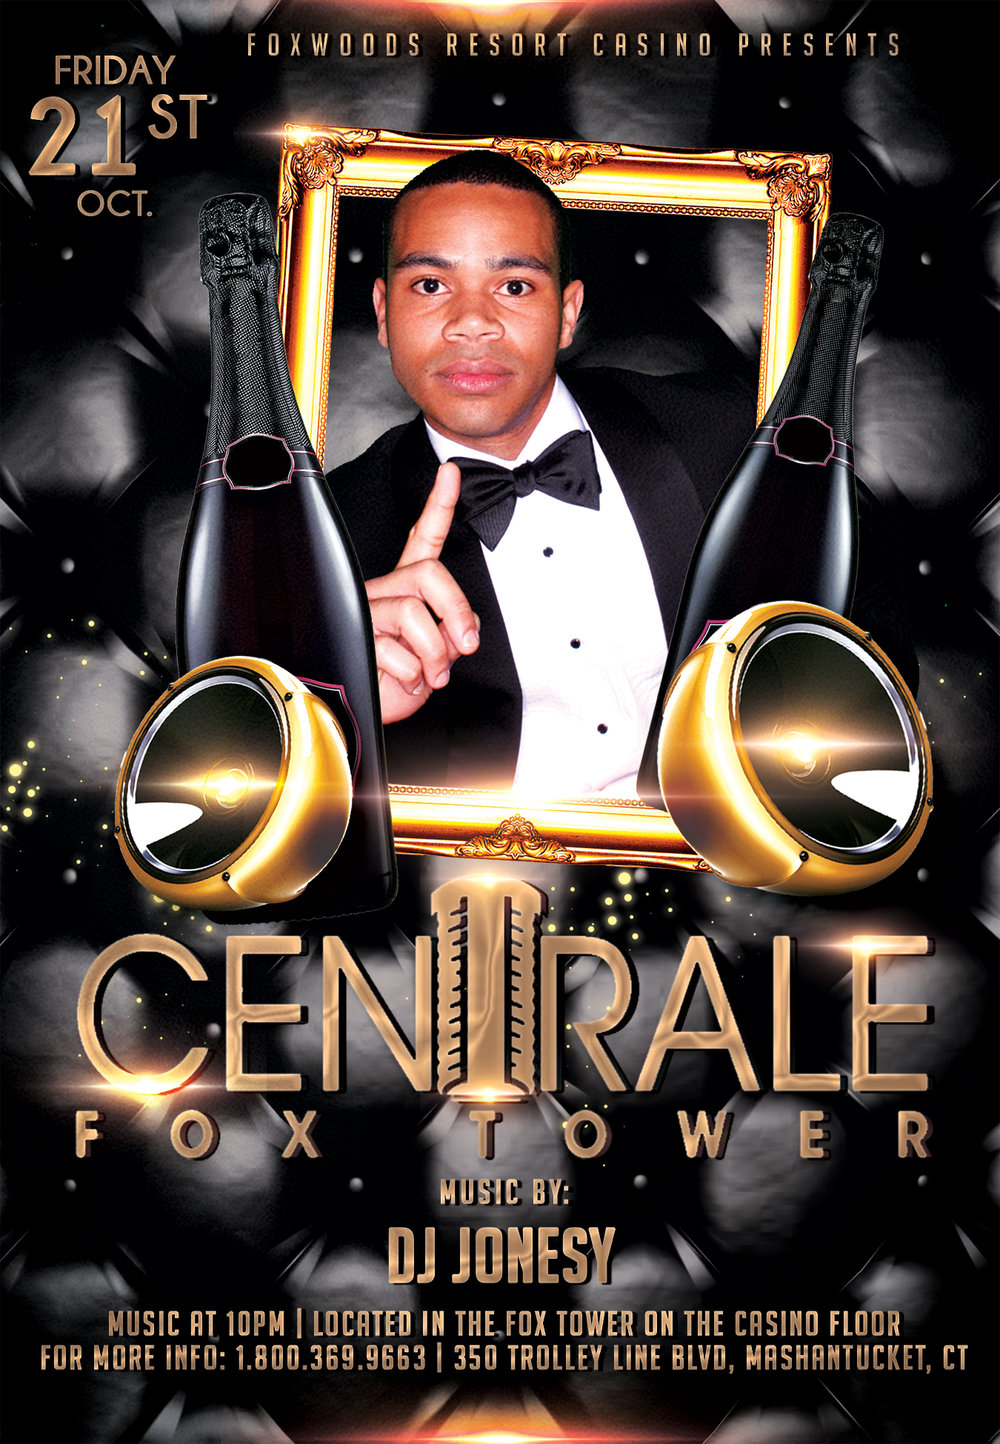 Friday, October 21st join me   Centrale Fox Tower   in   Foxwoods Resort Casino   for music by yours truly 10pm-close.